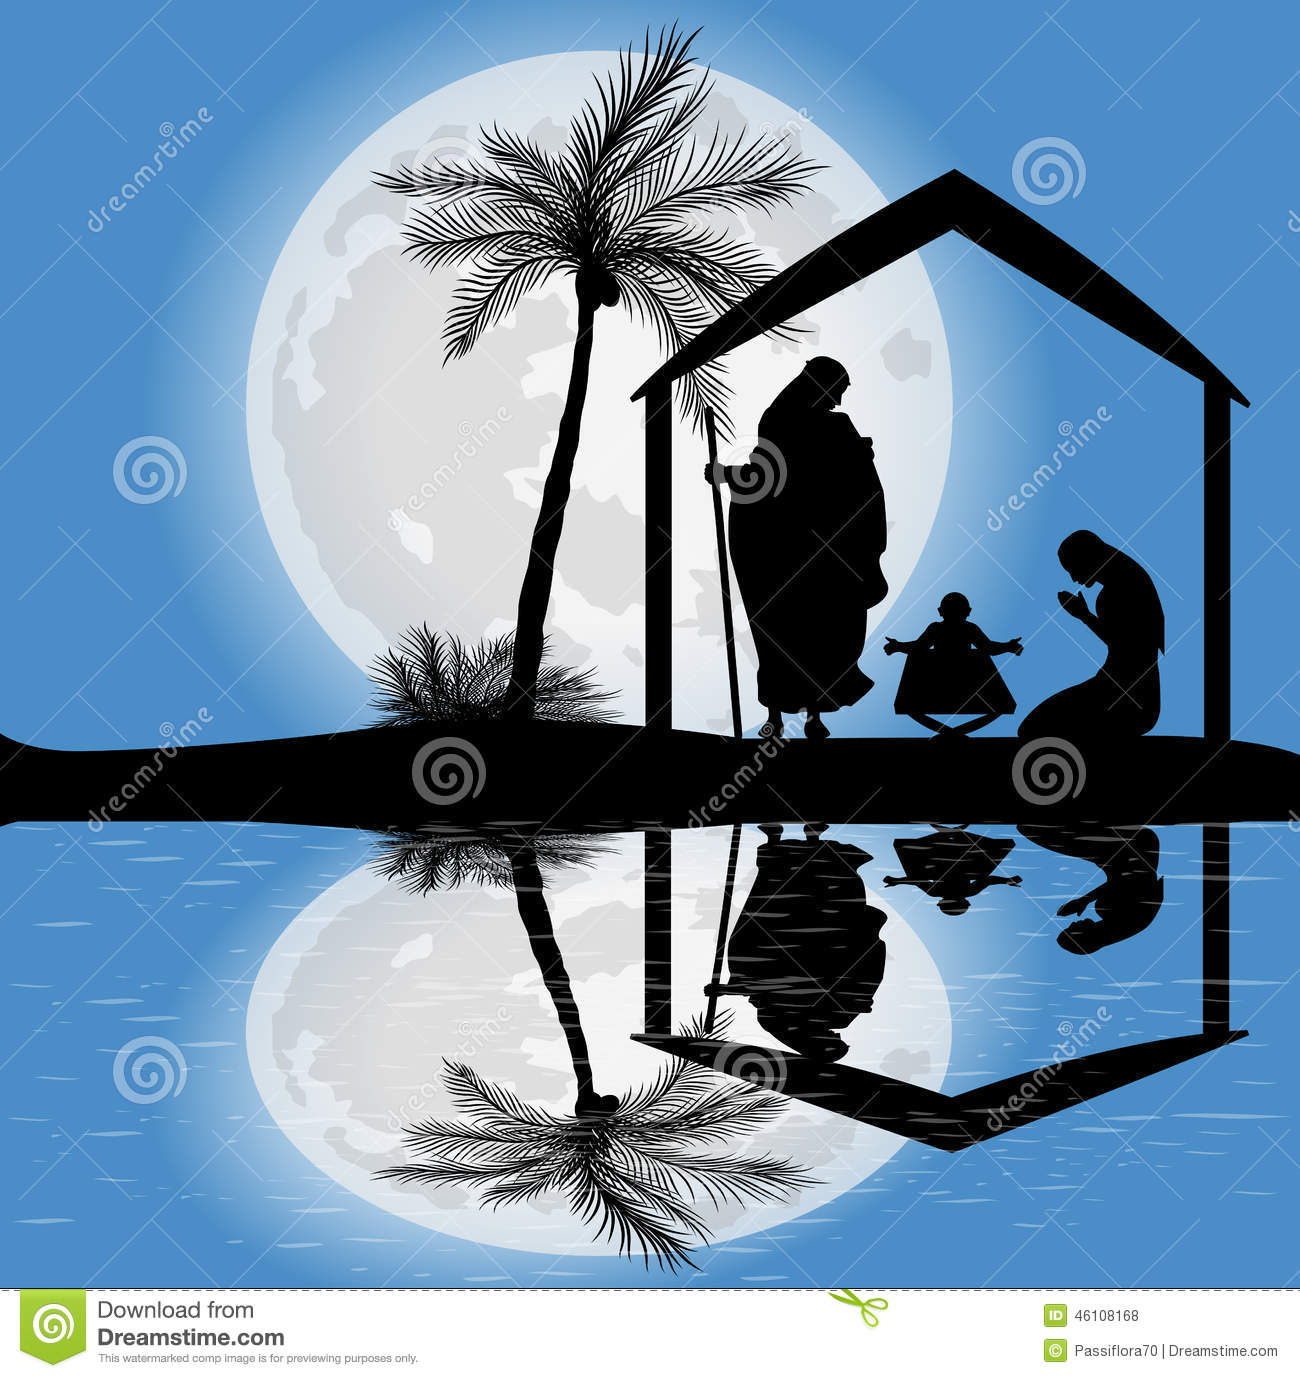 Silhouette Of The Nativity Scene Stock Illustration - Image: 46108168